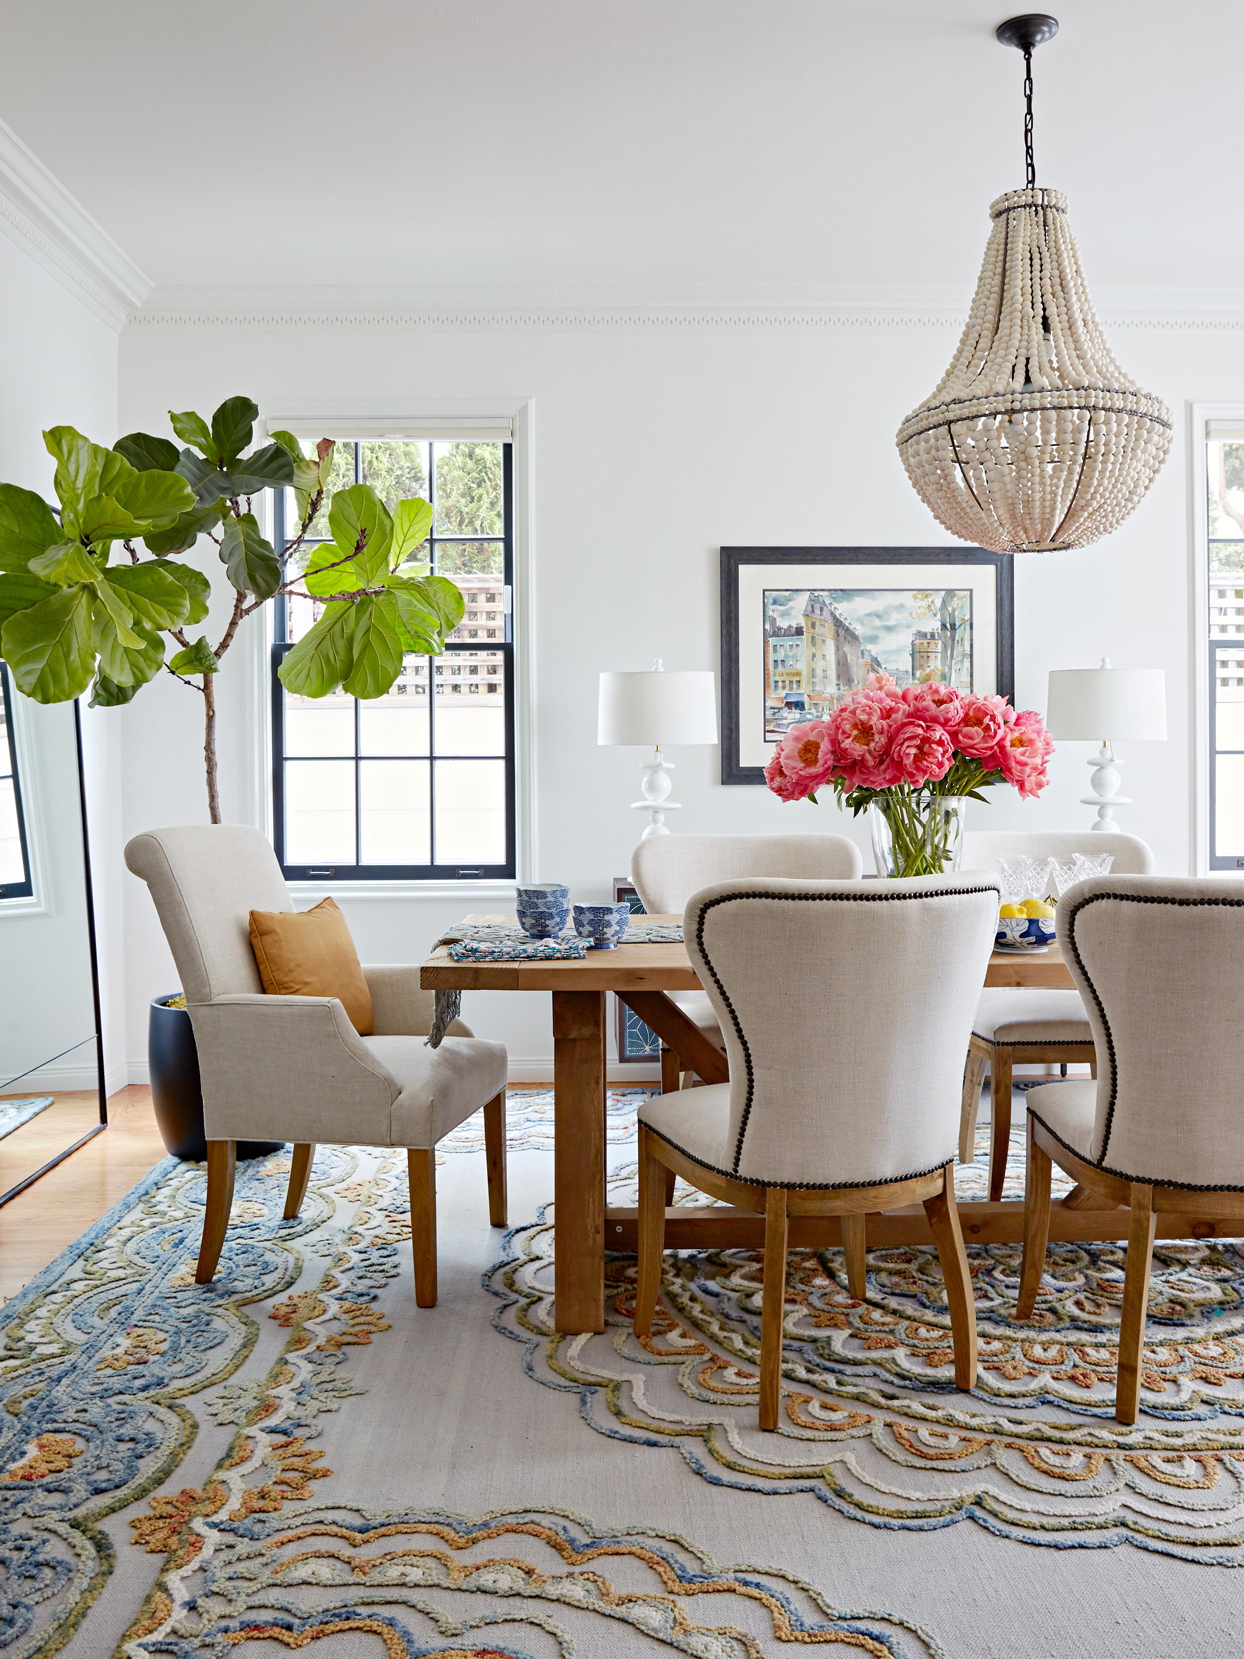 neutral-colored dining room with fiddle leaf fig tree